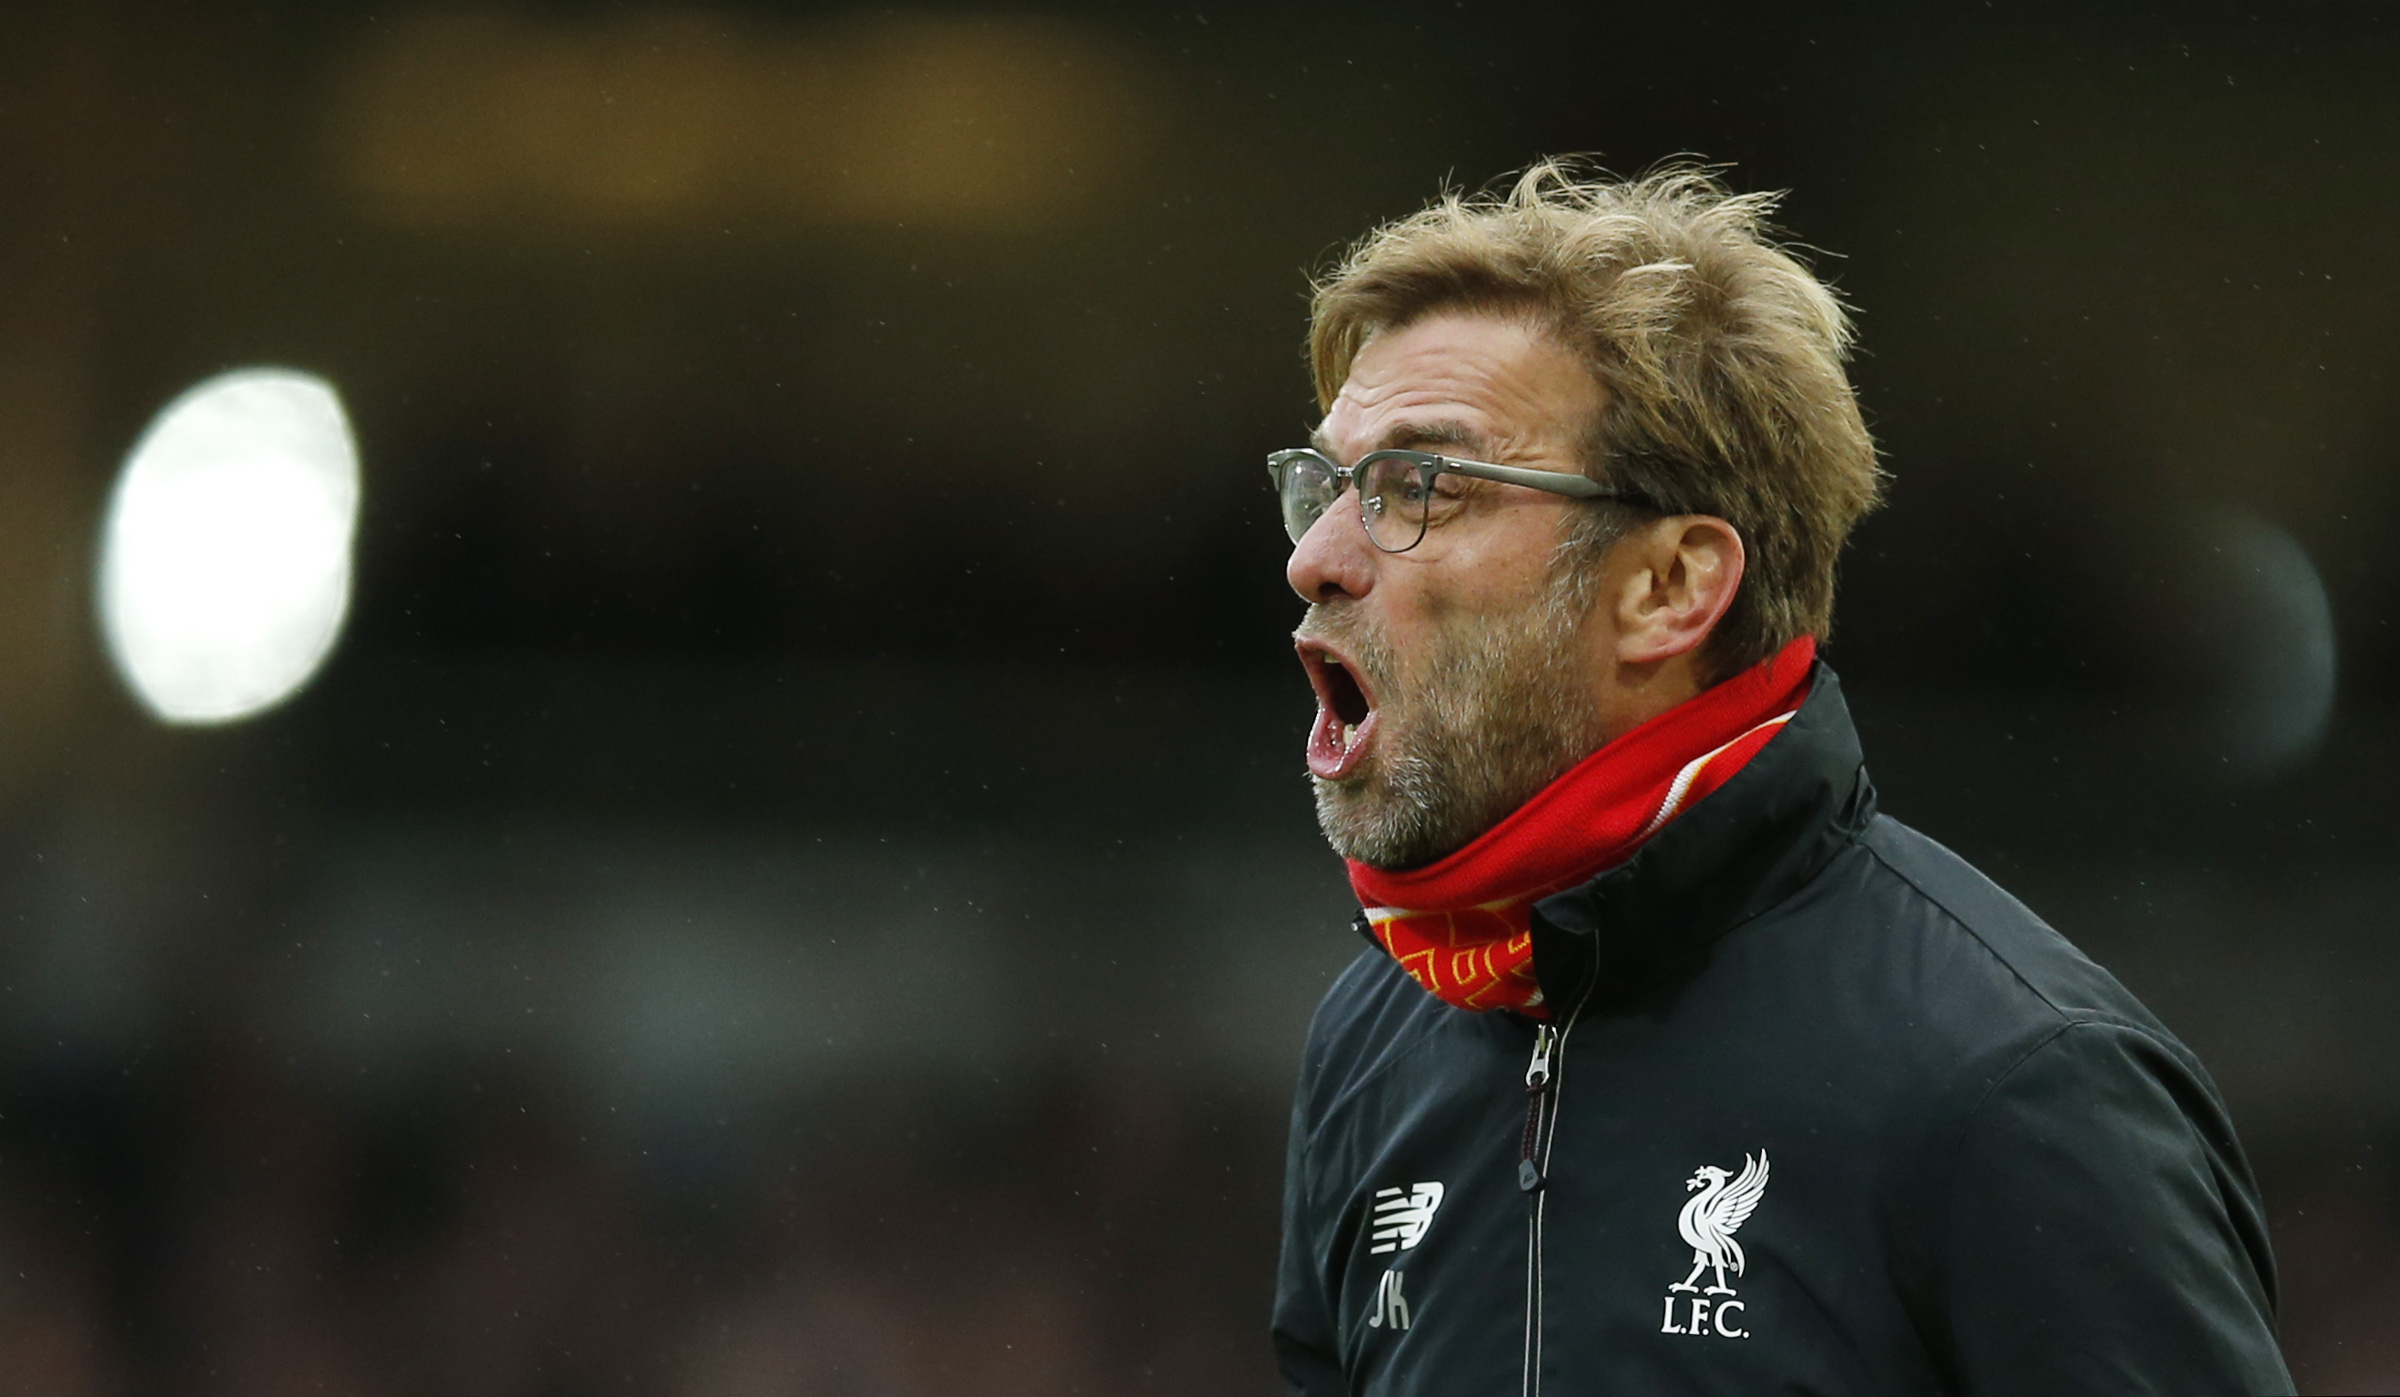 Liverpool manager Juergen KloppnAction during Barclays Premier League game against West Ham United at Upton Park in January 2, 2016. Photo: Reuters